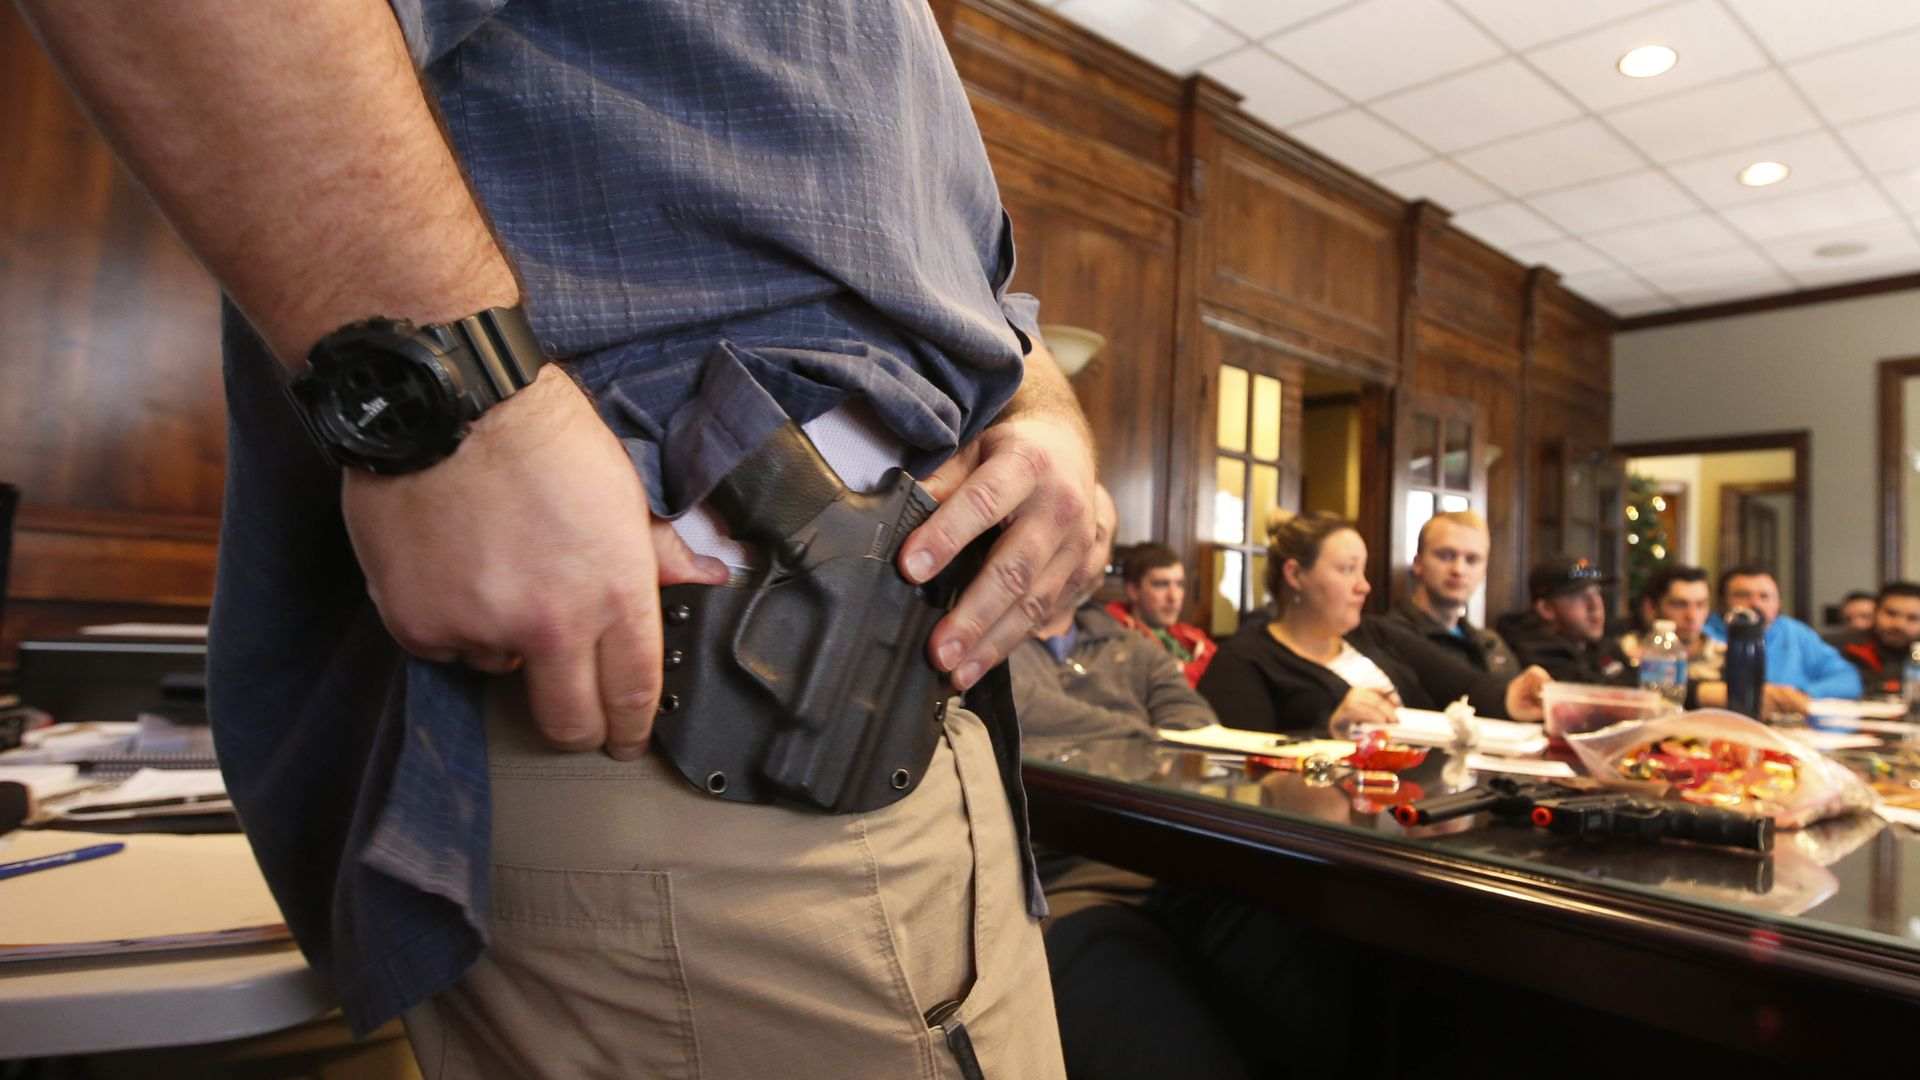 A concealed carry permit class